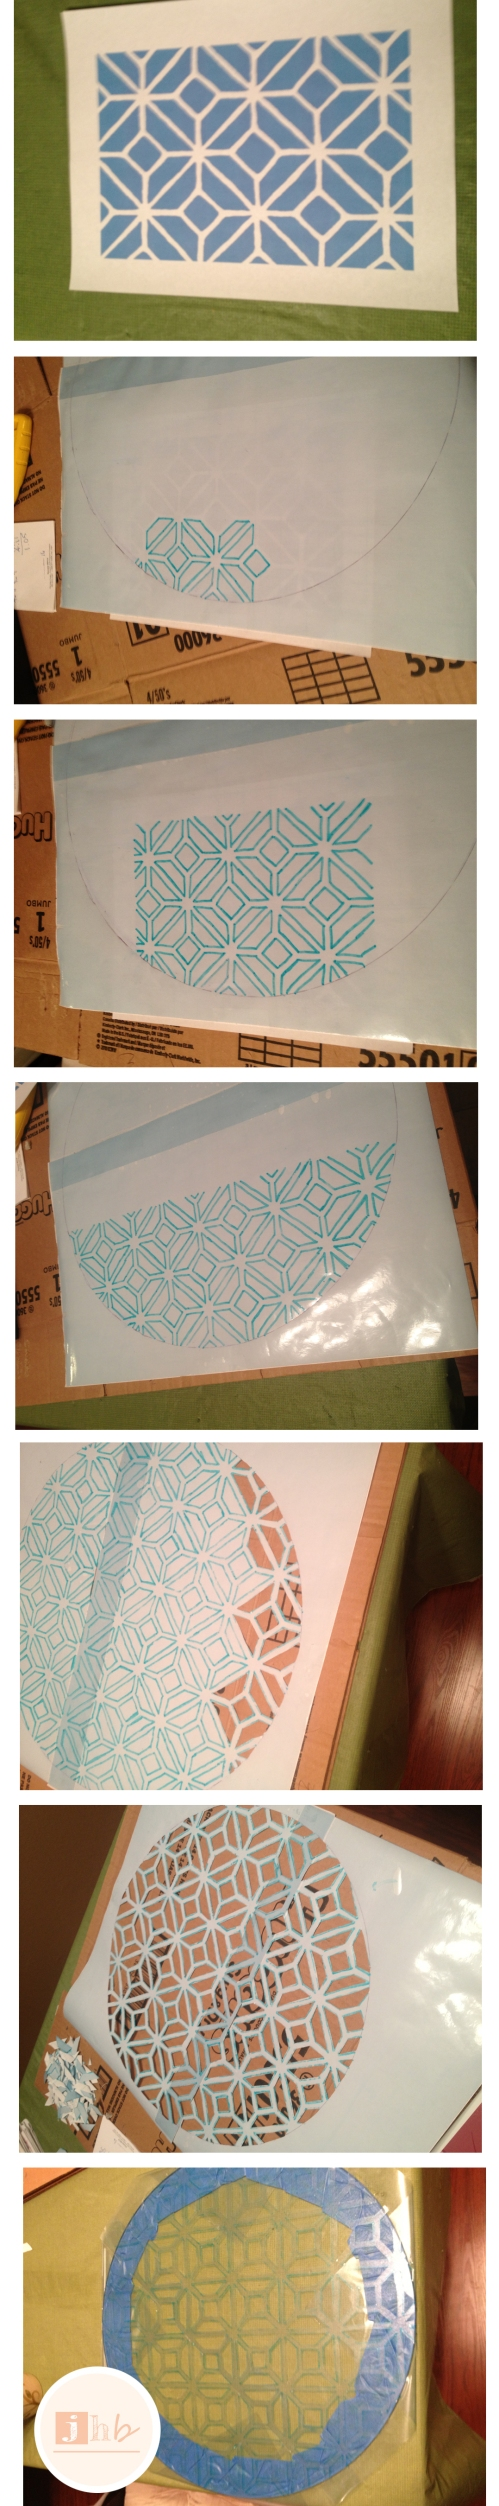 DIY Geometric Stenciled Table Top